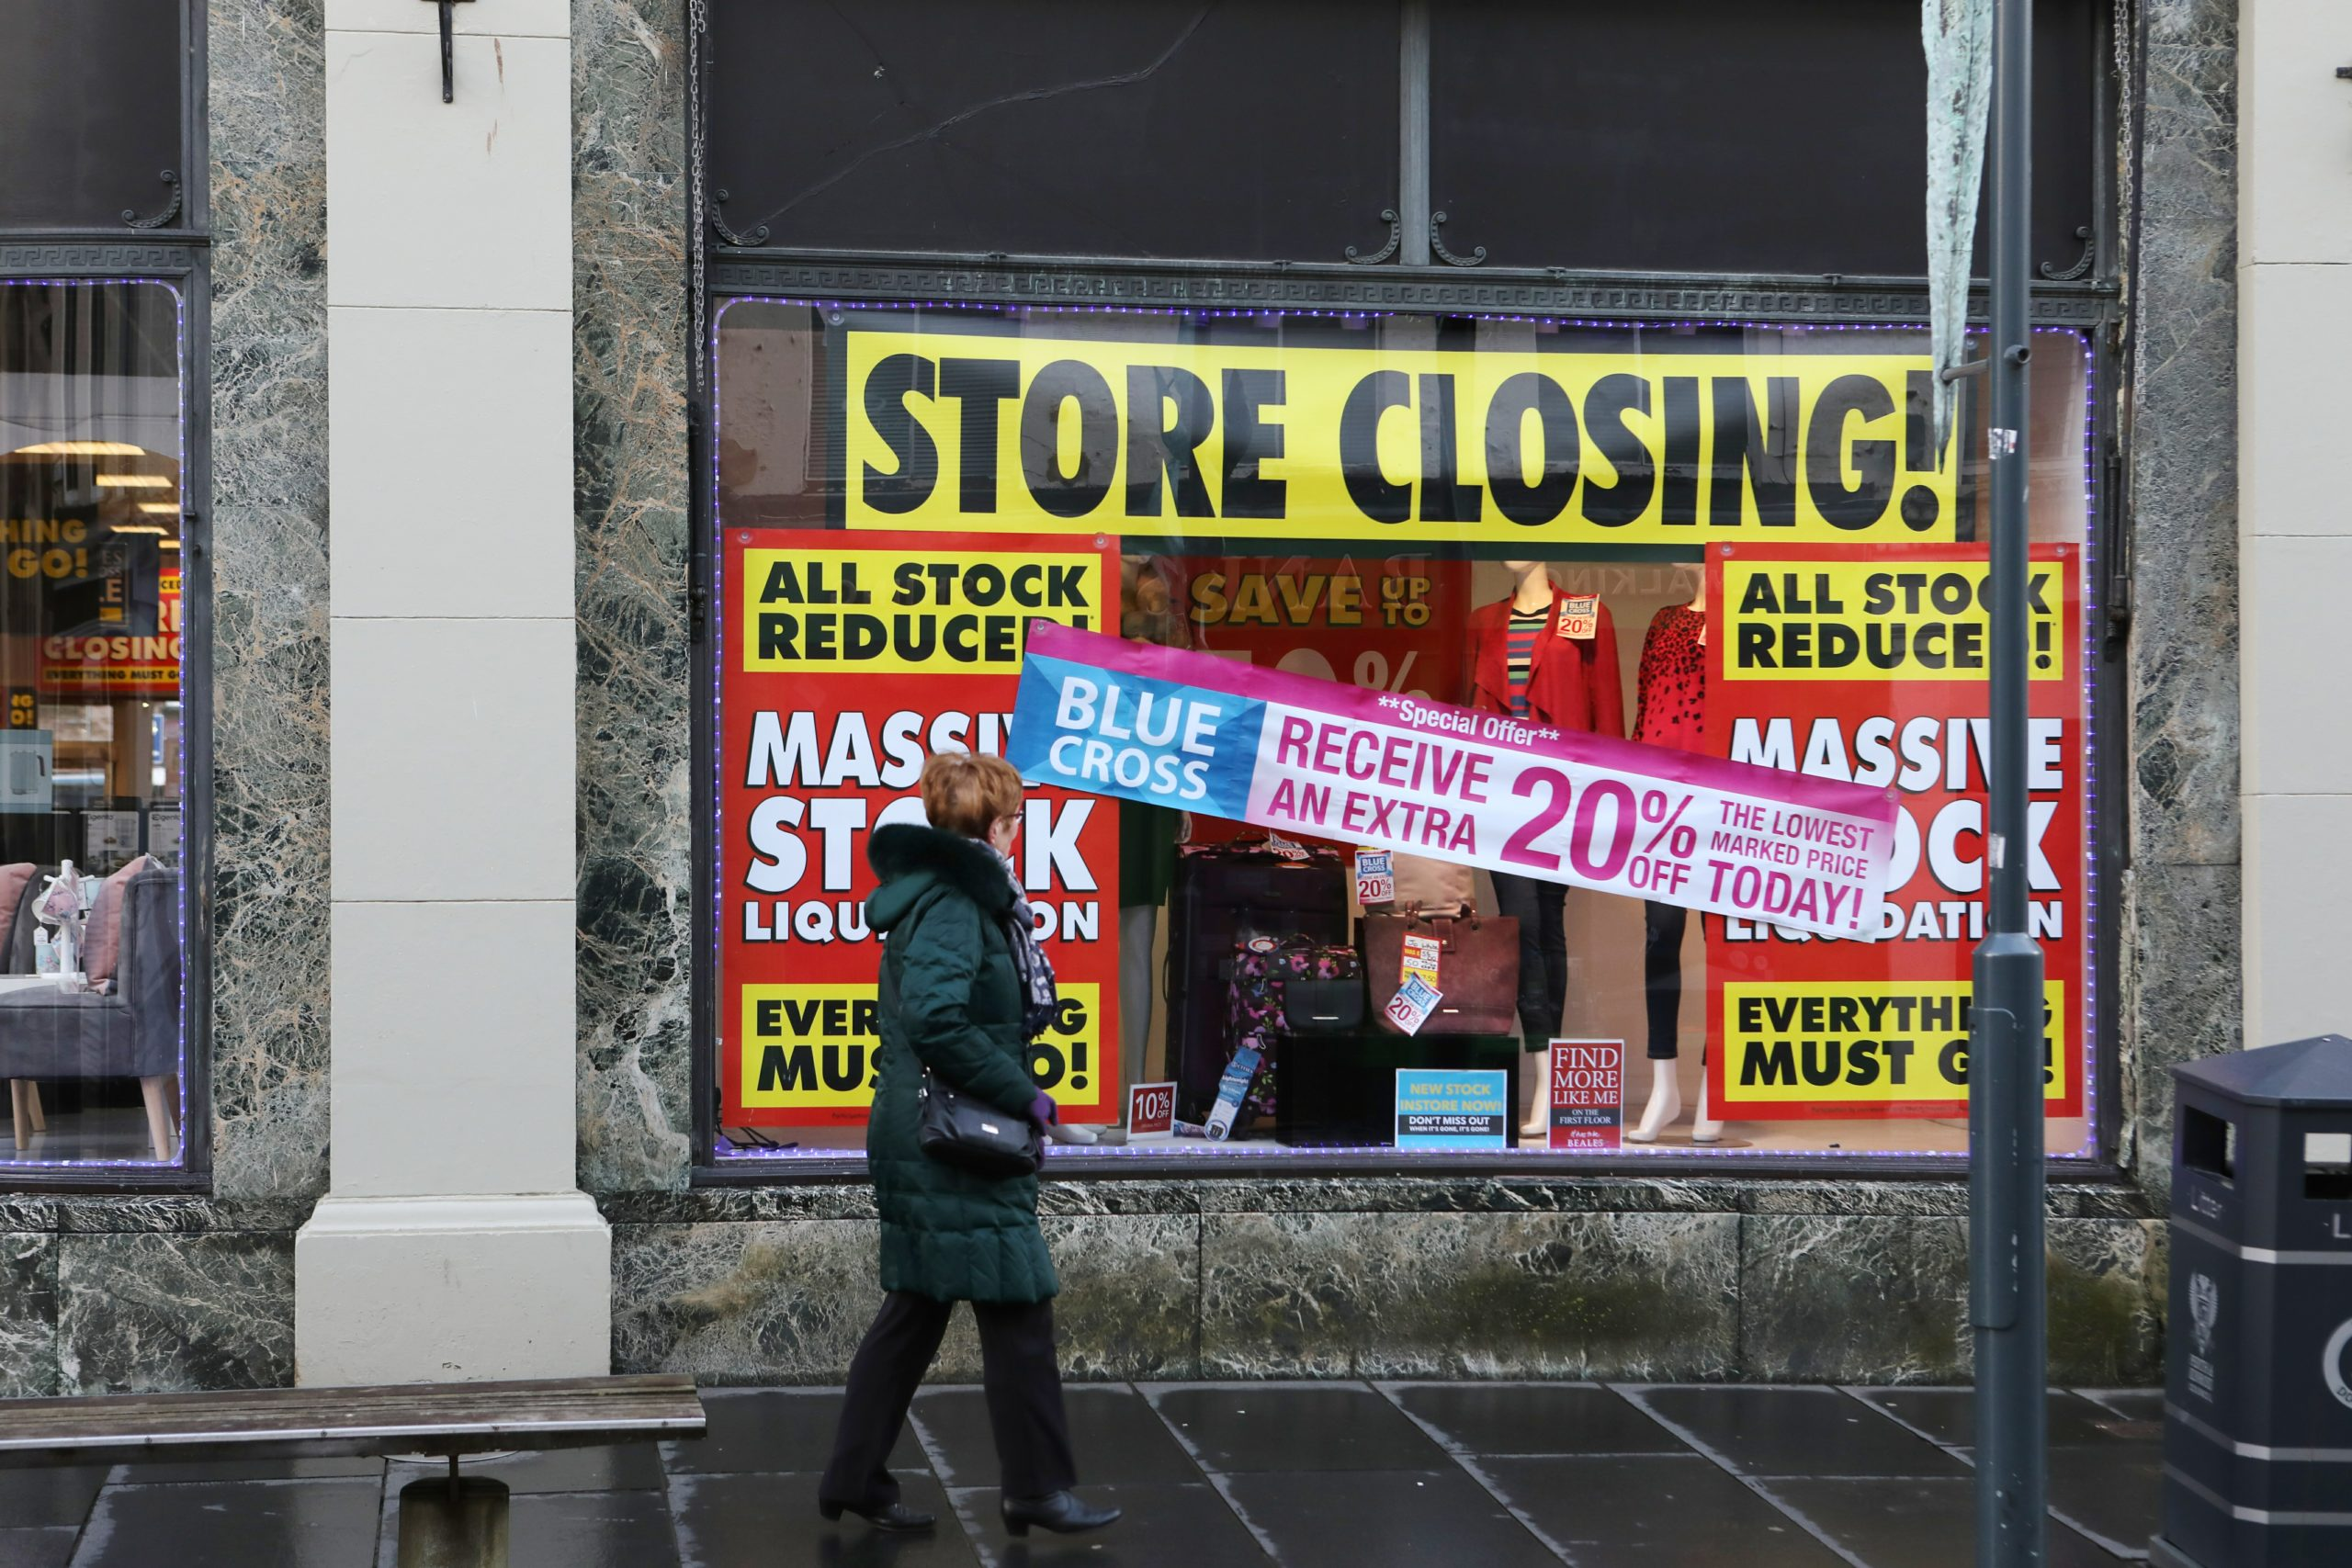 Store closing signs at Beales in Perth